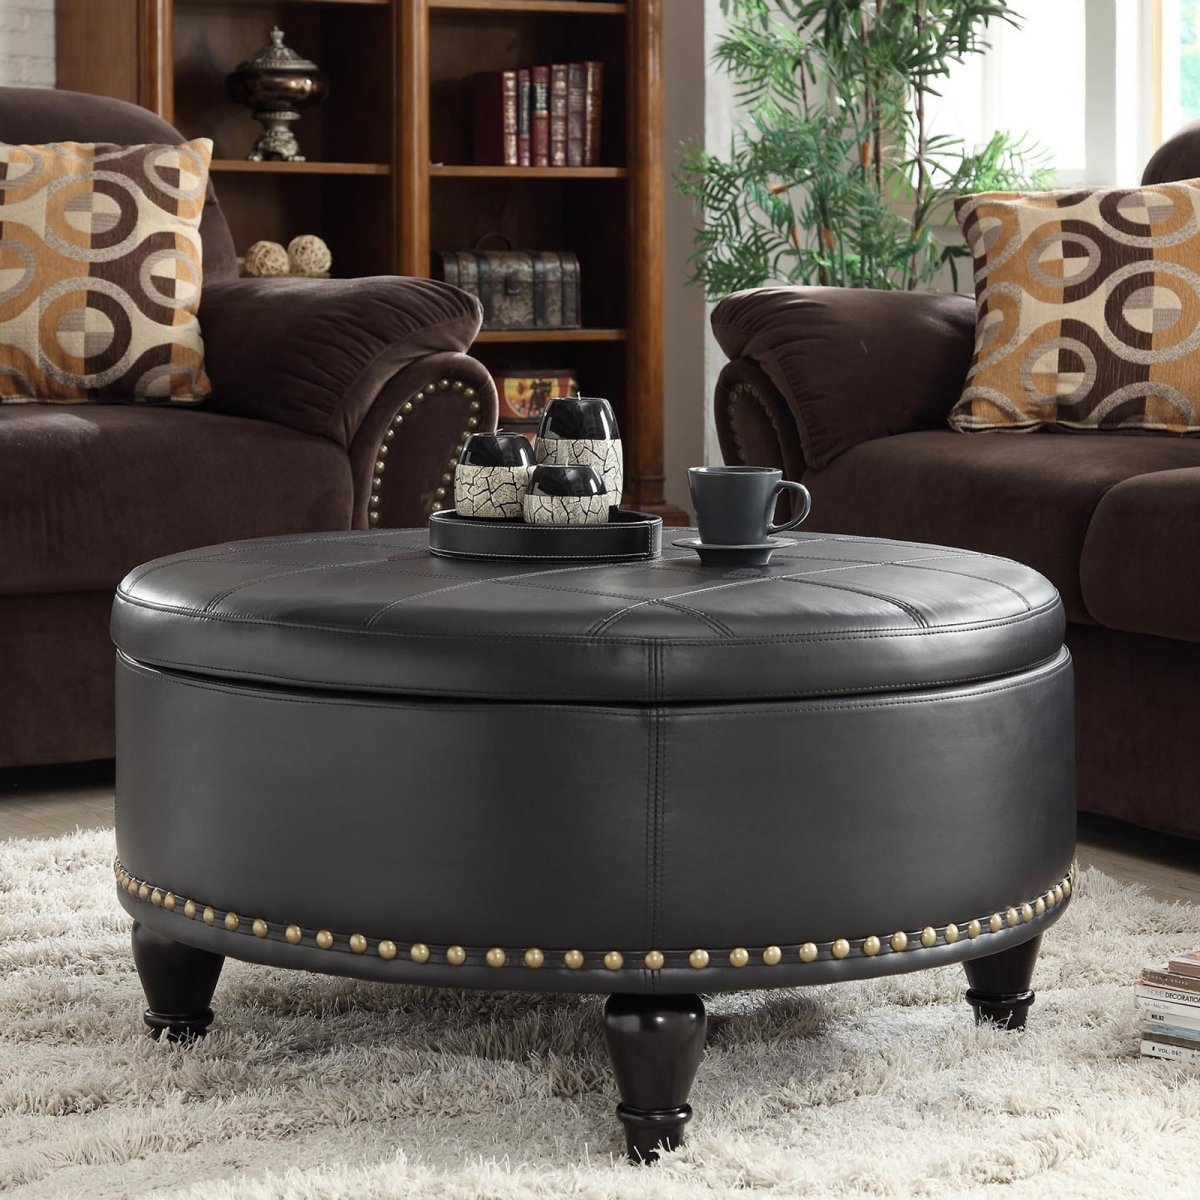 Unique and creative tufted leather ottoman coffee table homesfeed Black round ottoman coffee table